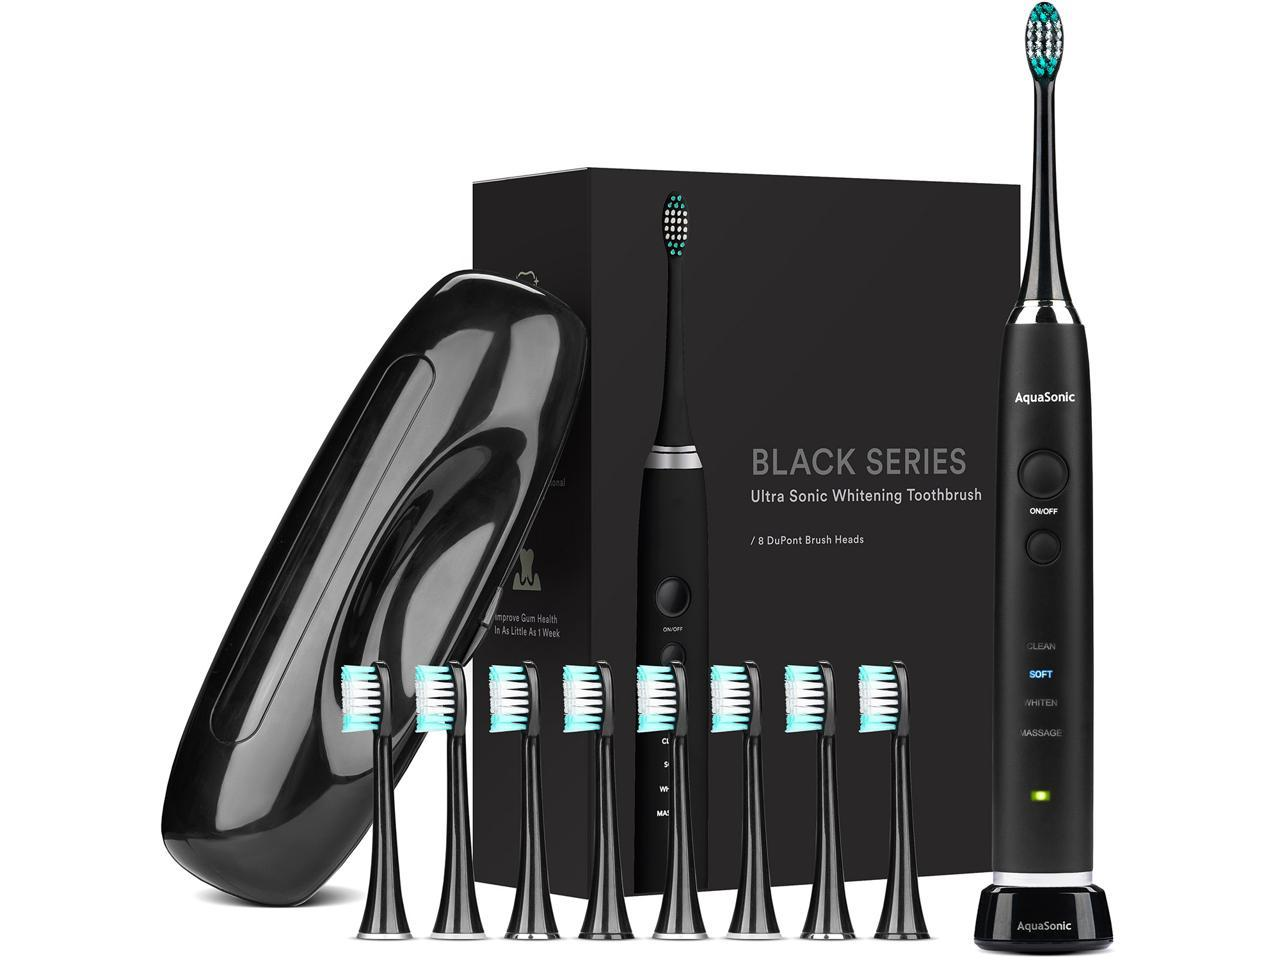 AquaSonic Black Series Ultra Whitening Toothbrush, Travel Case Included (More Options)